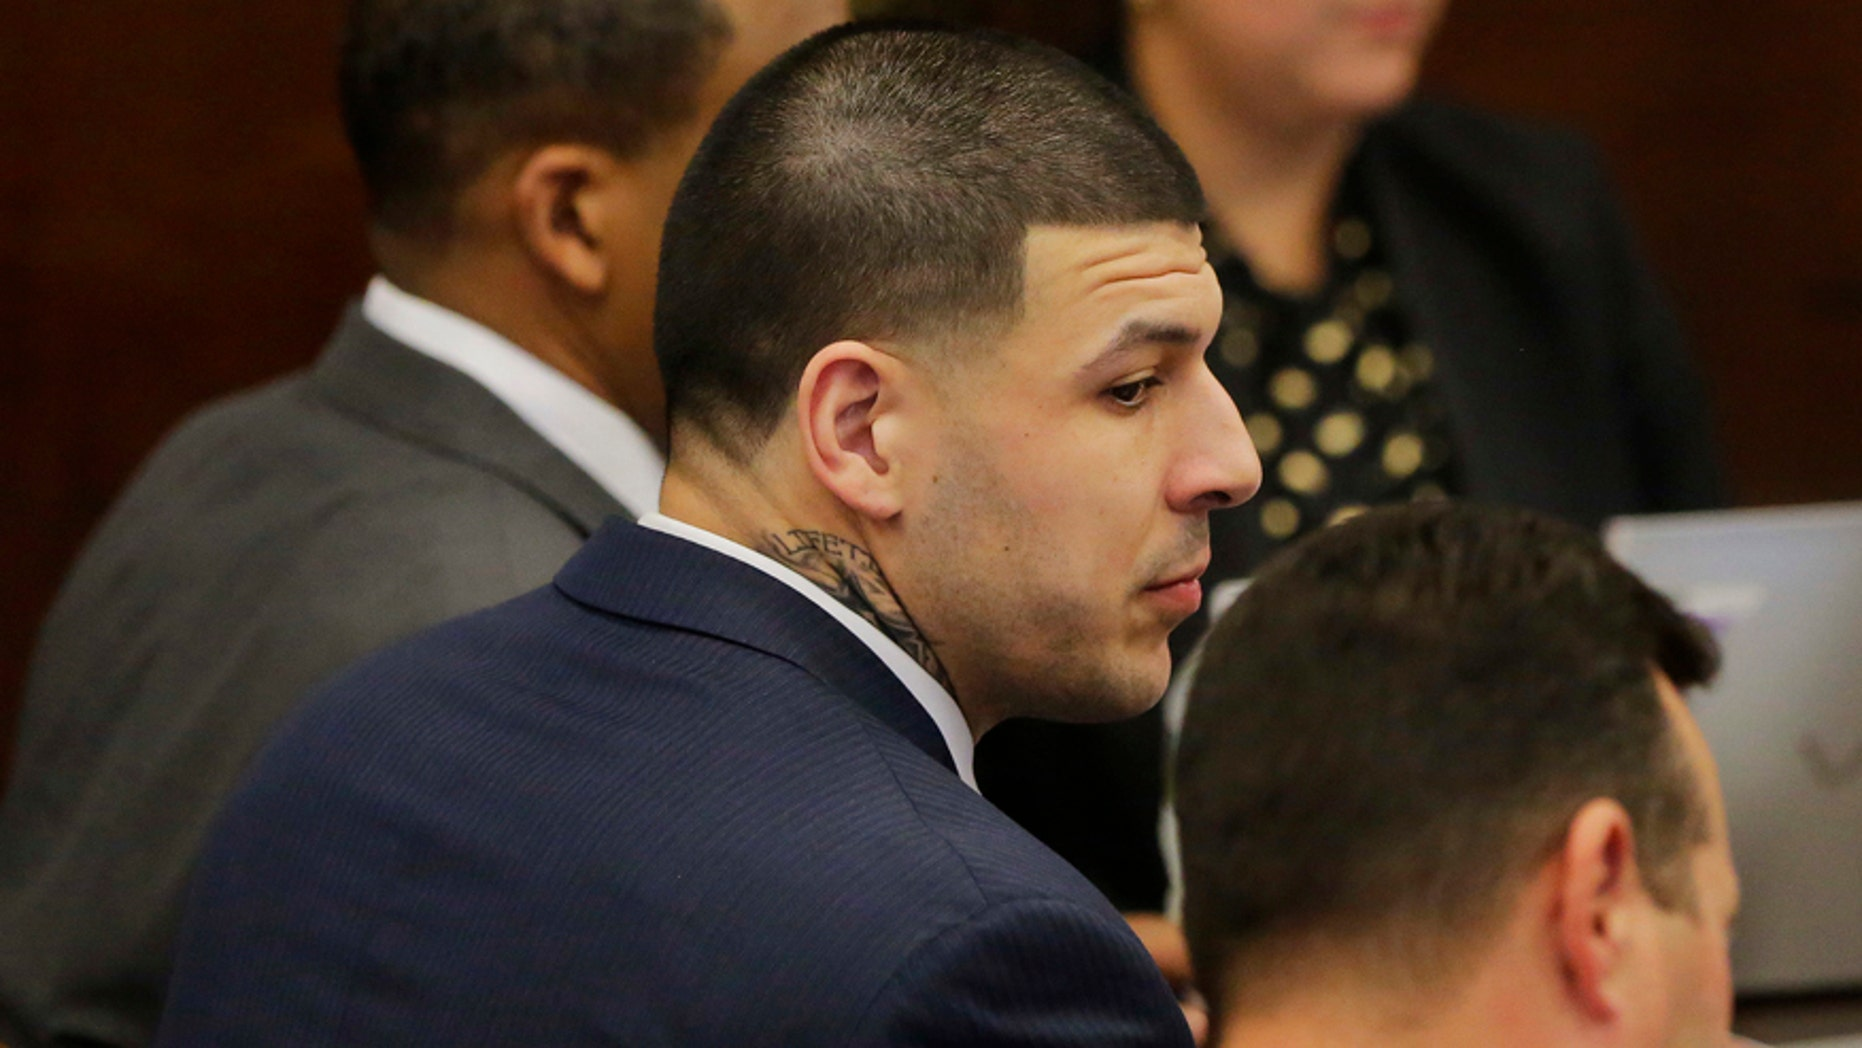 Former New England Patriots tight end Aaron Hernandez sits with his attorneys Jose Baez, right, and Ronald Sullivan, left, at the opening of the fist day of his double murder trial at Suffolk Superior Court on Wednesday, March 1, 2017, in Boston. Hernandez is standing trial for the July 2012 killings of Daniel de Abreu and Safiro Furtado who he encountered in a Boston nightclub. He is already serving a life sentence in the 2013 killing of semi-professional football player Odin Lloyd. (AP Photo/Stephan Savoia, Pool)